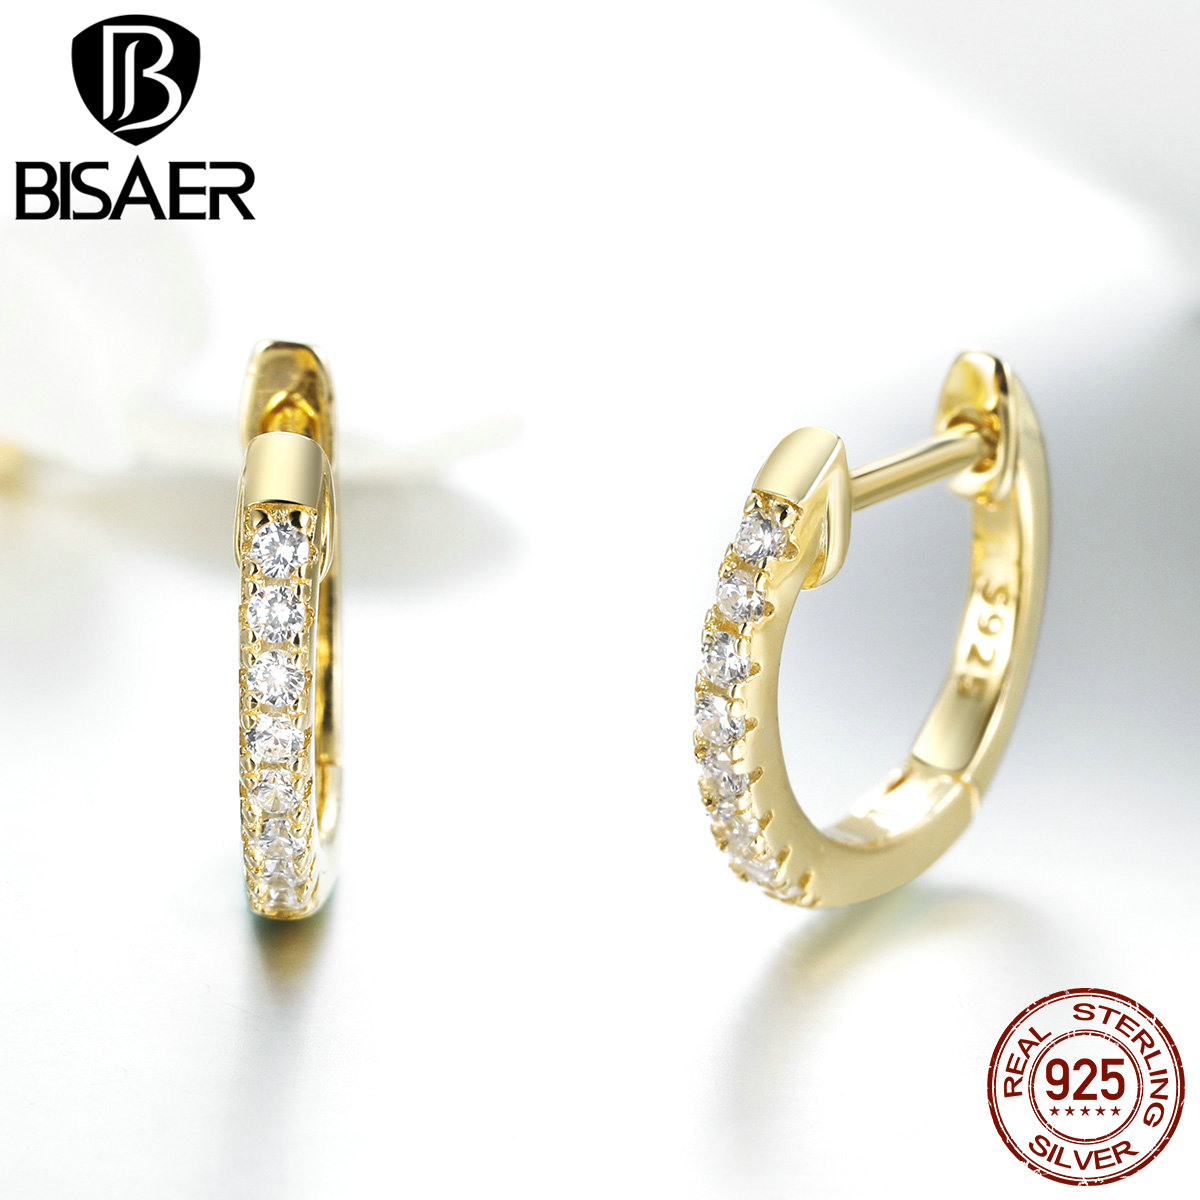 BISAER 925 Sterling Silver Crystal Simple Circle Stud Earrings for Women Round Circle title=